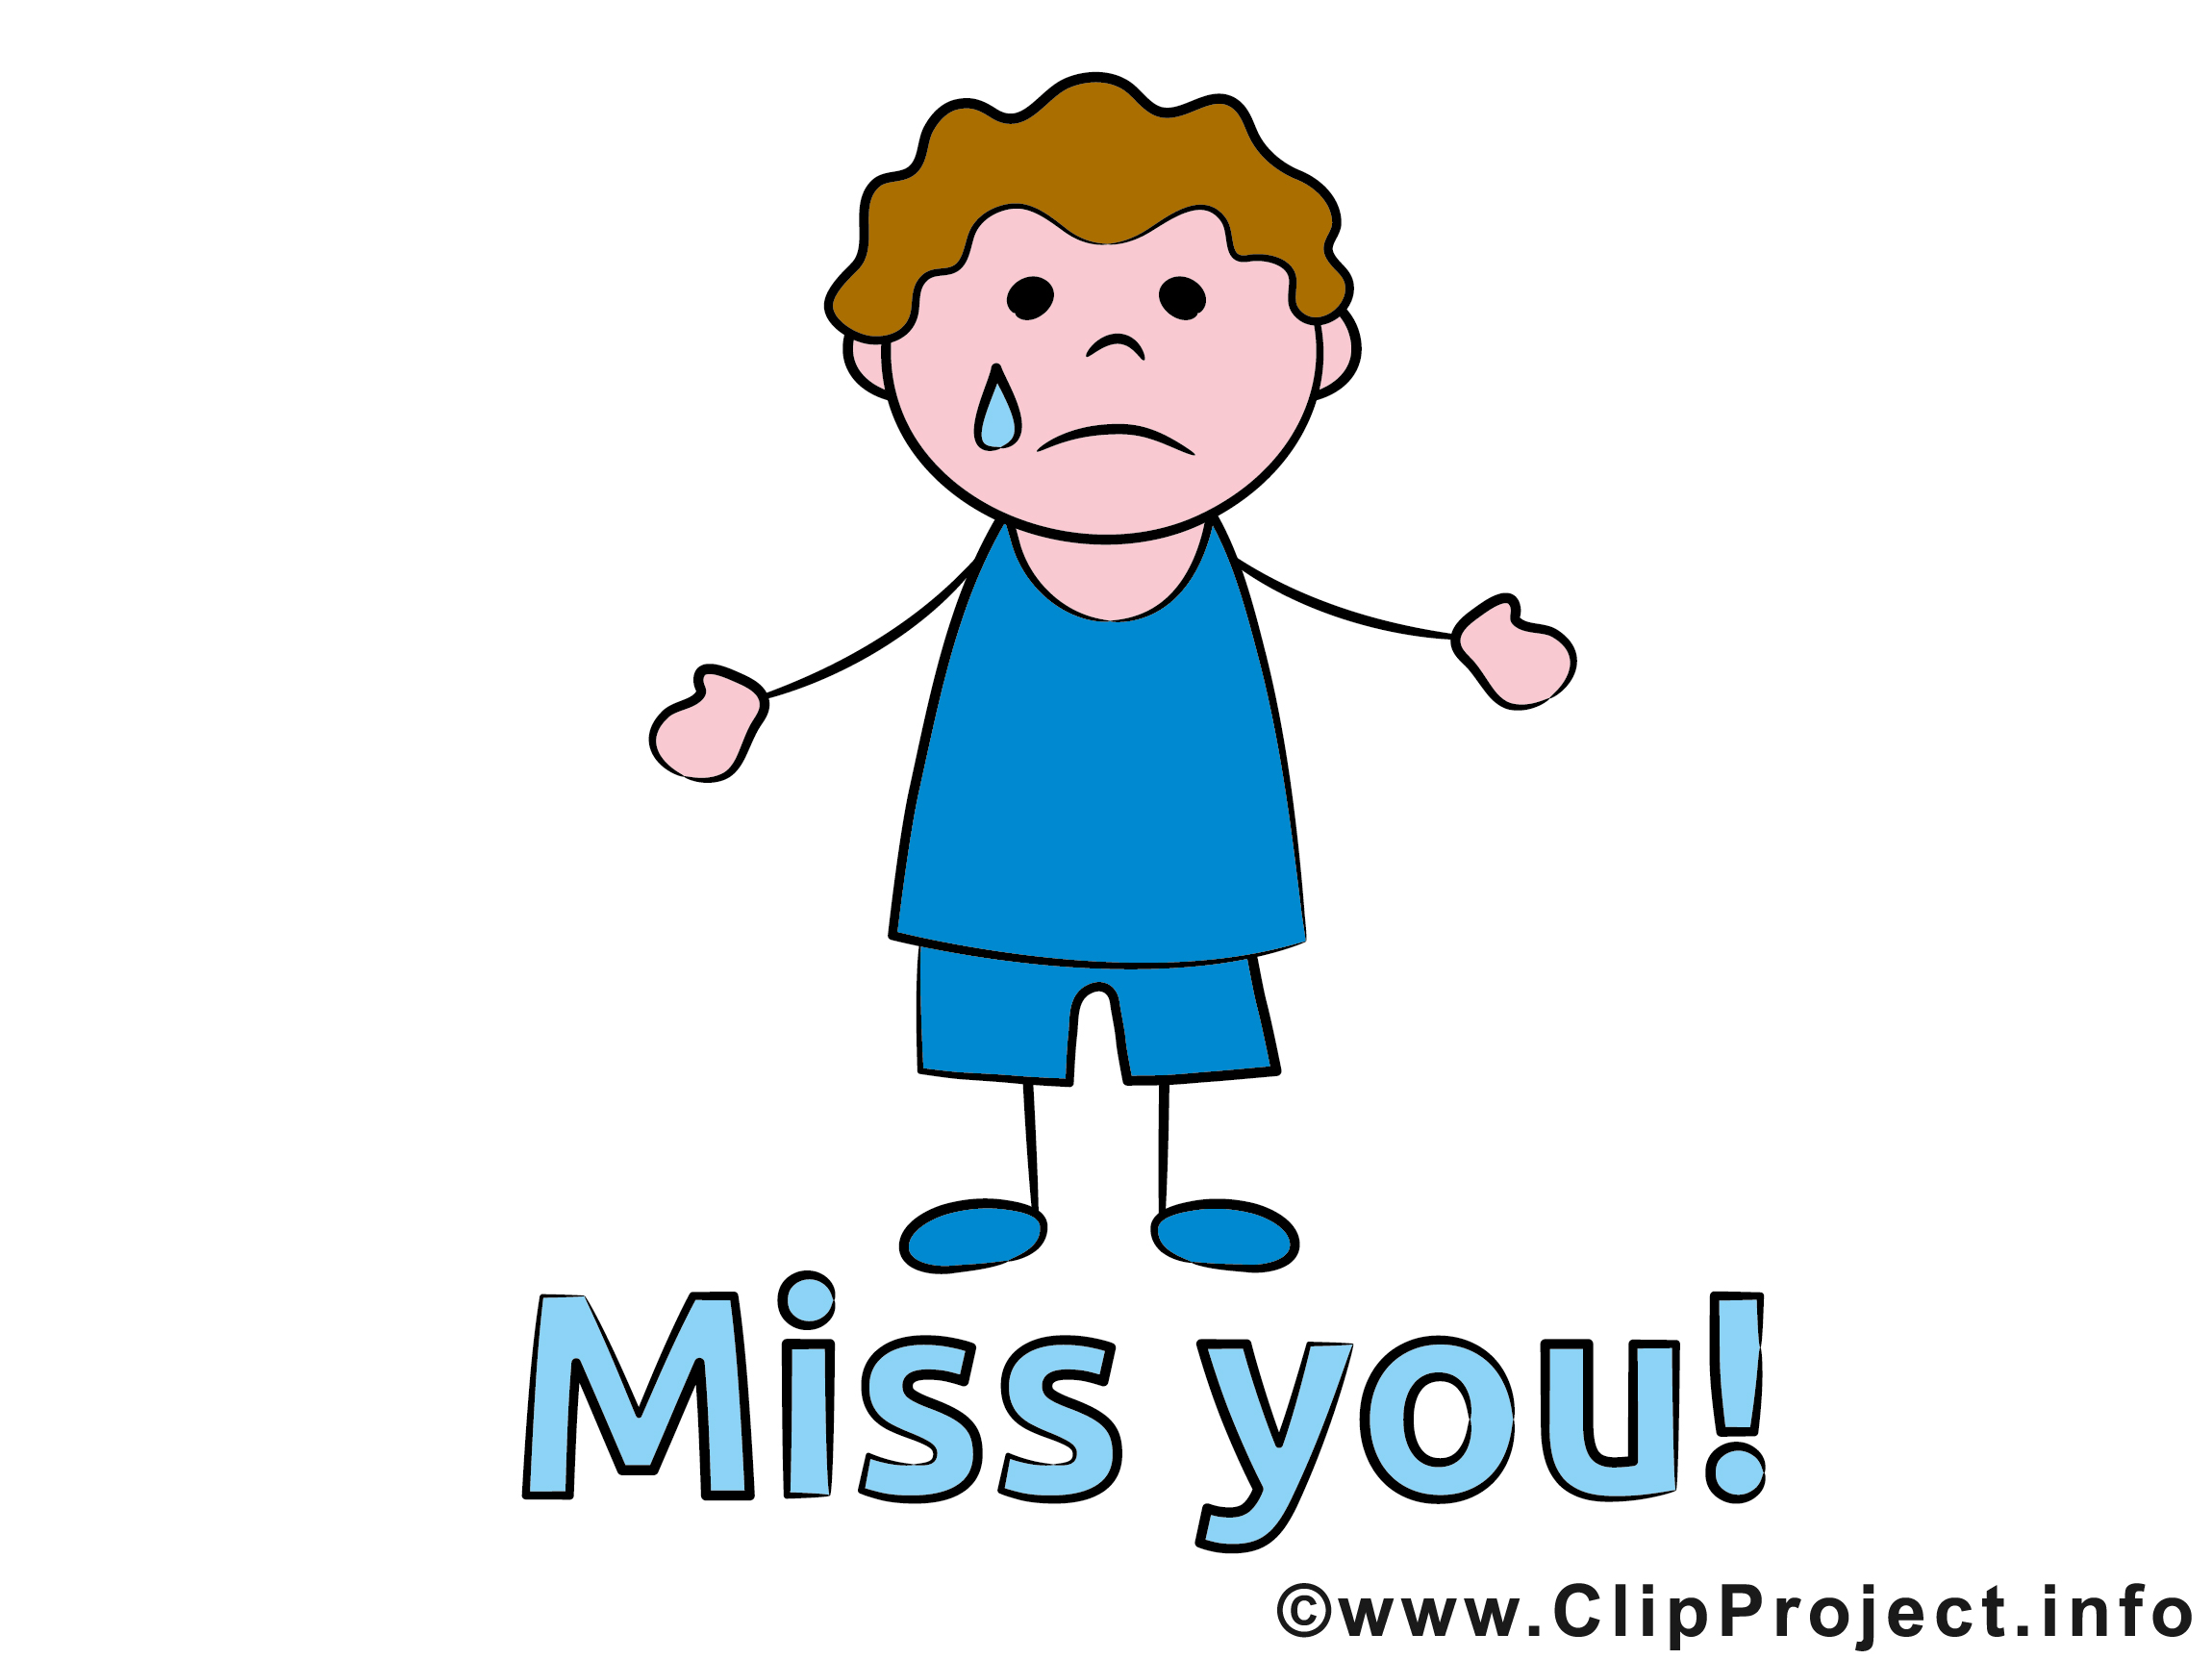 Miss You Co-worker Clipart #1-Miss You Co-worker Clipart #1-12